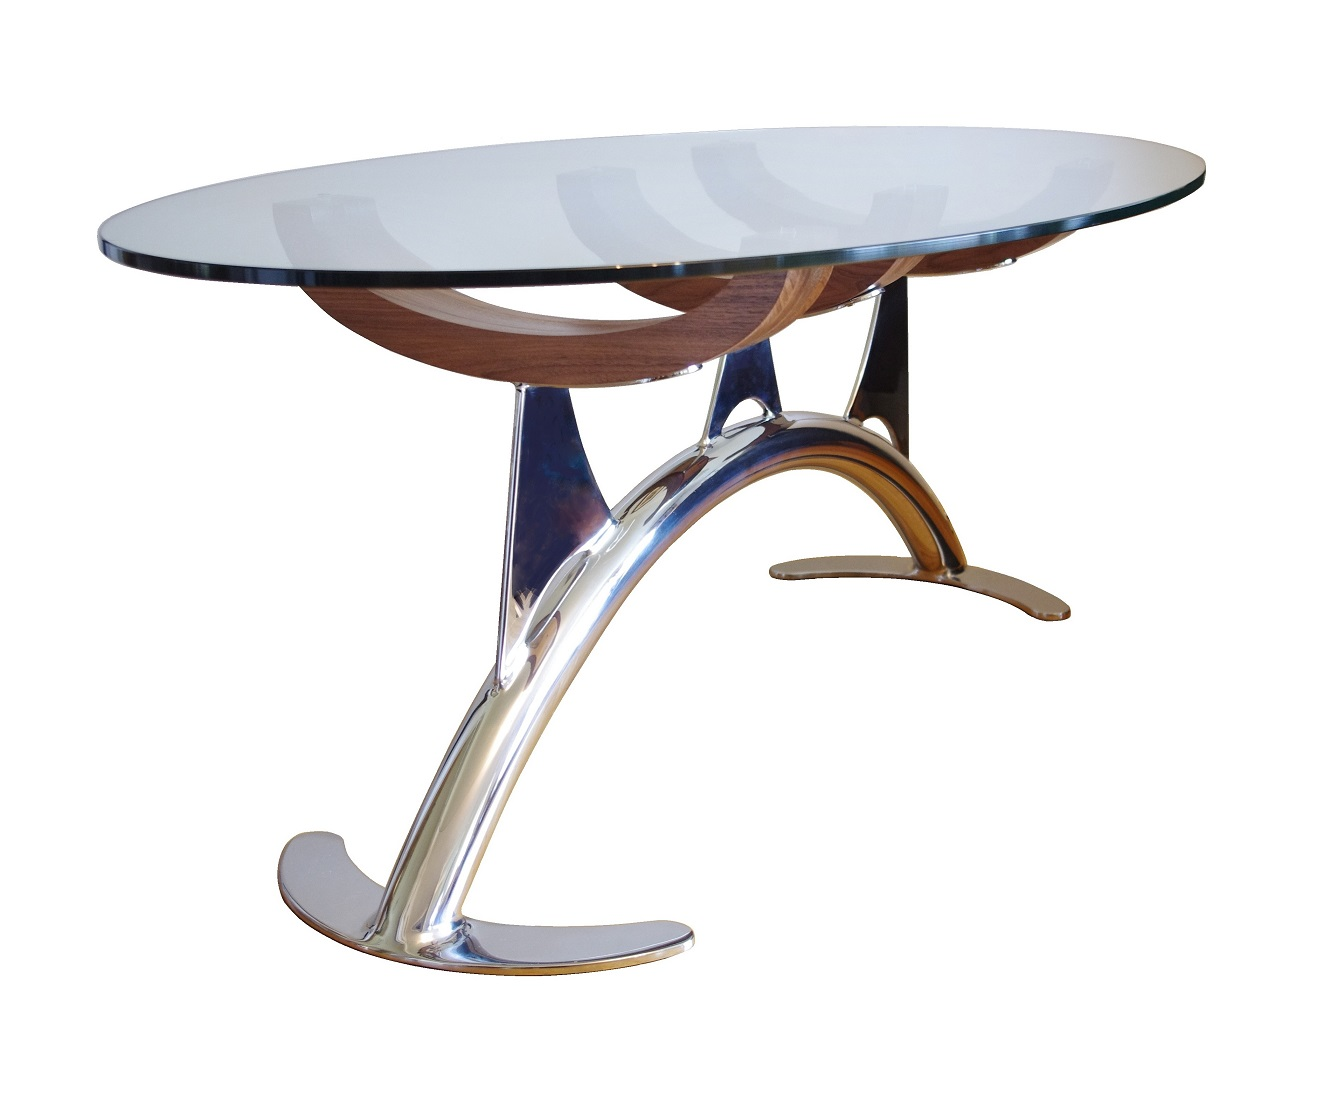 Glass Coffee Table Bespoke Modern Handmade Tables Chris Bose